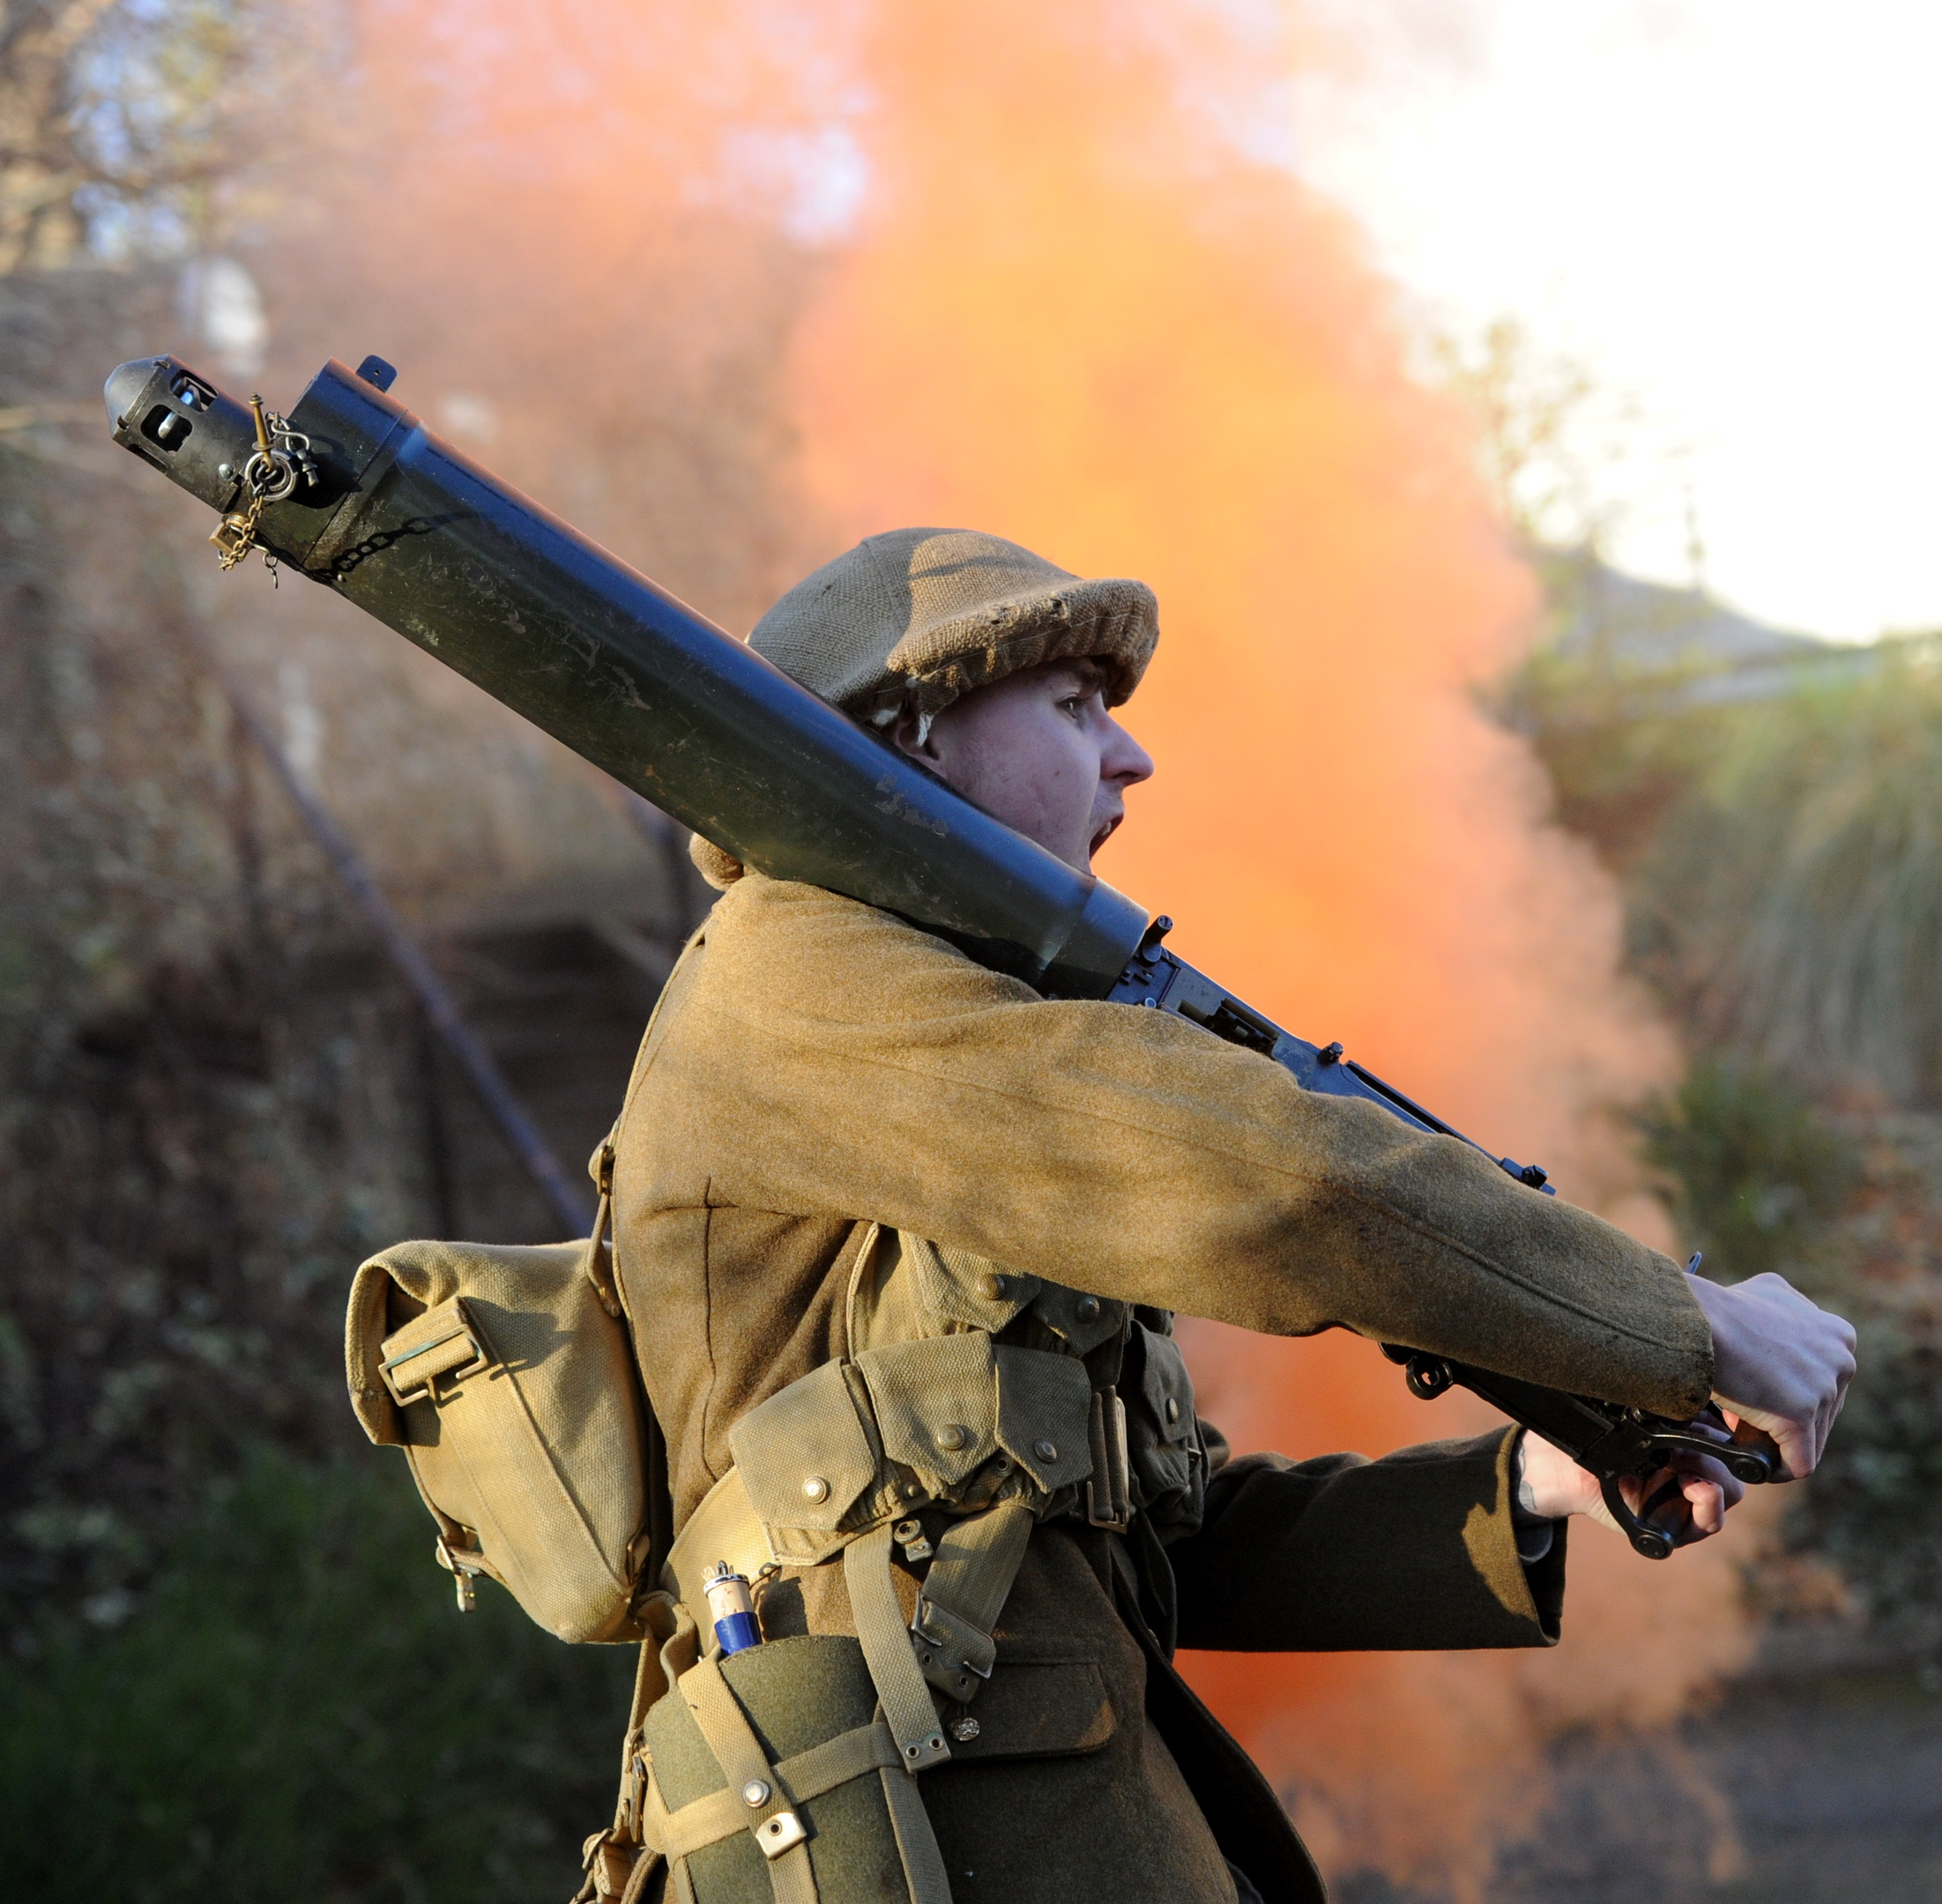 Pte McIntosh carried two light rifles from the German embankment after storming it.